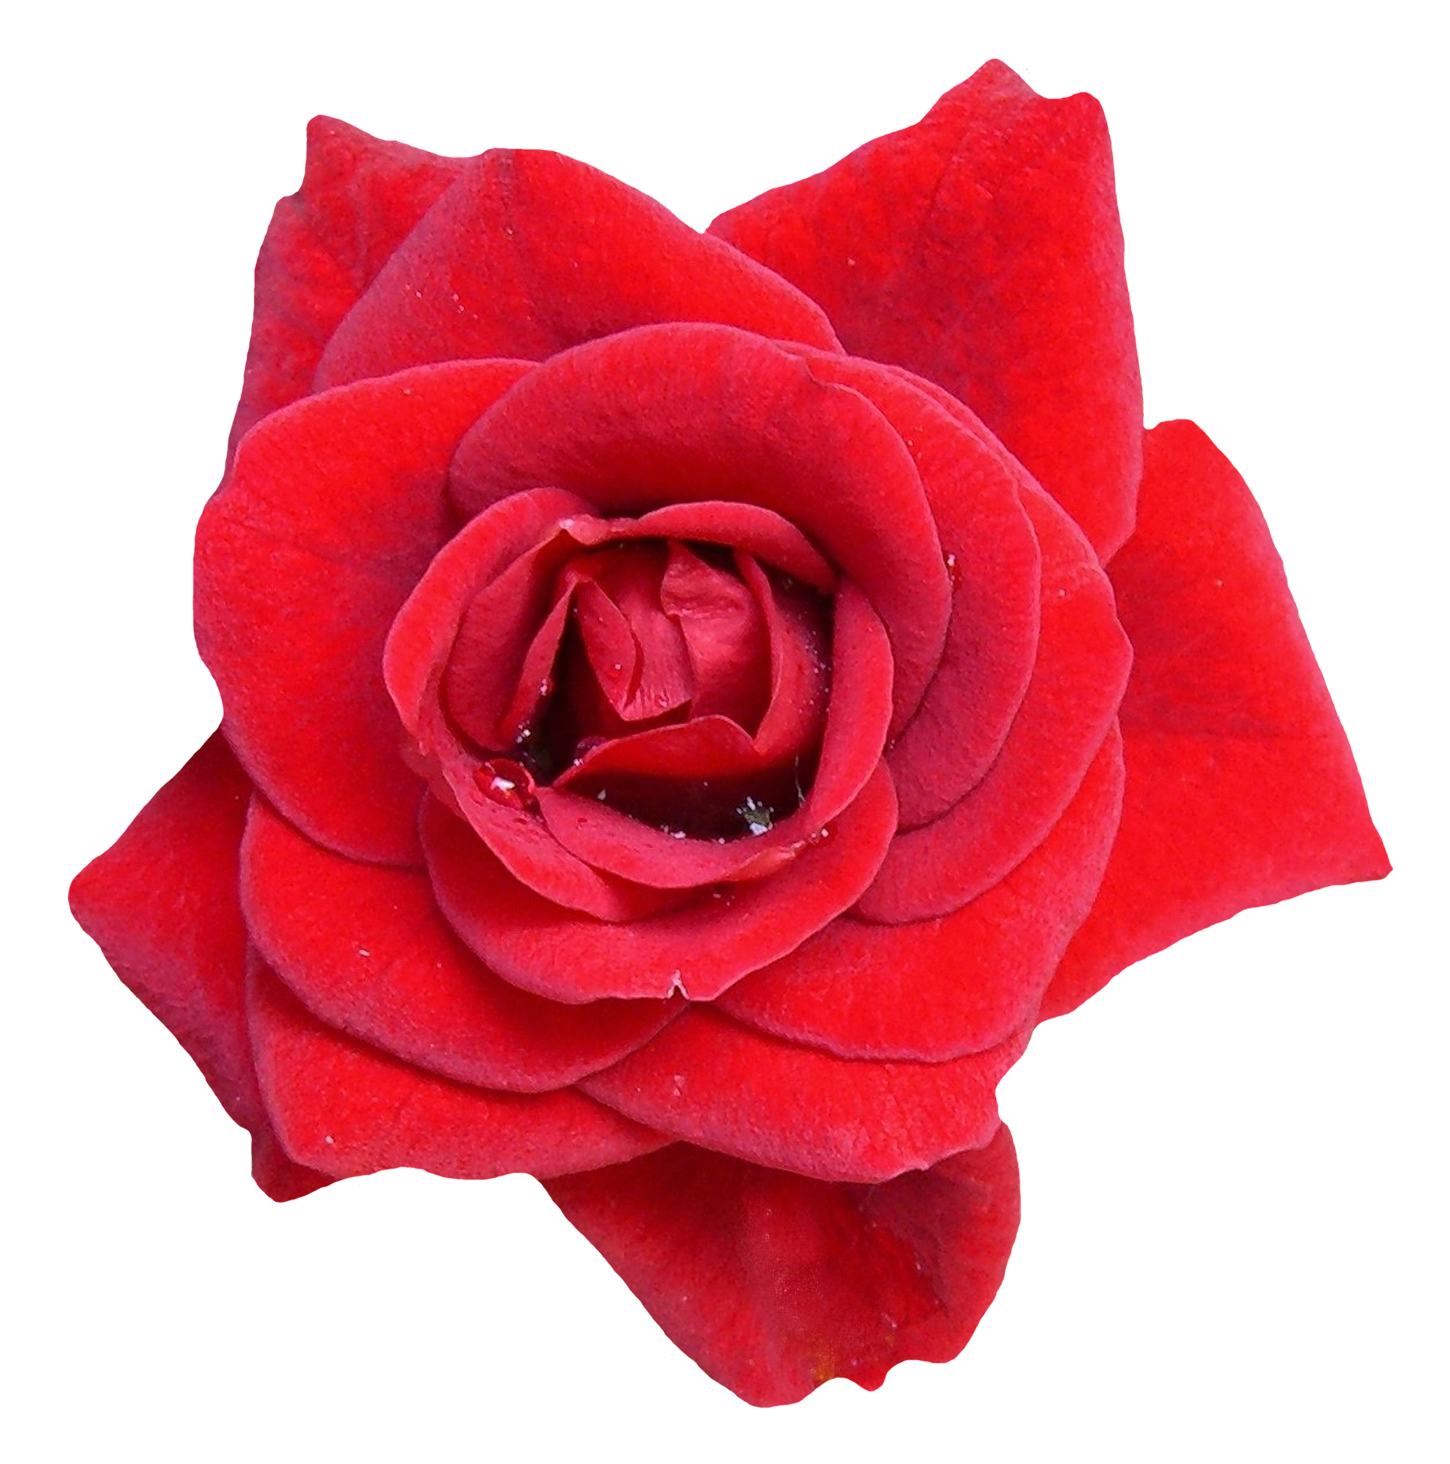 Red flower png image. Rose clipart high resolution